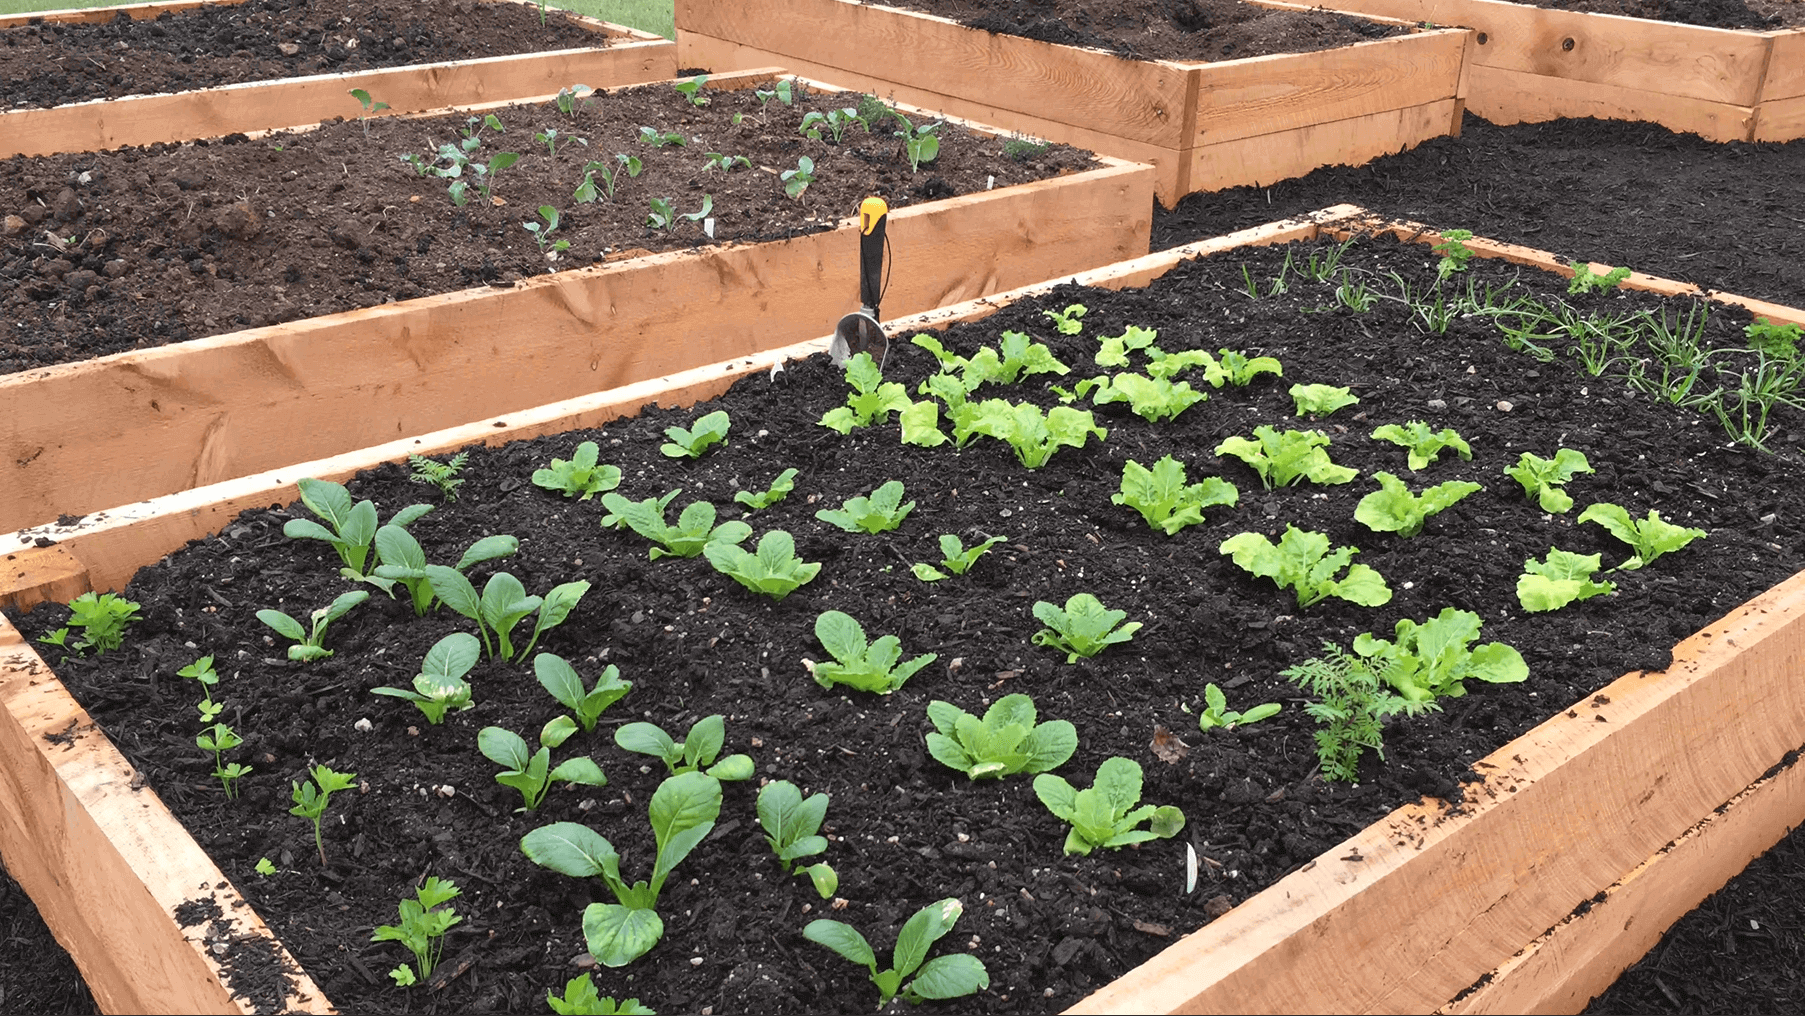 plants planted in soil in raised planter box